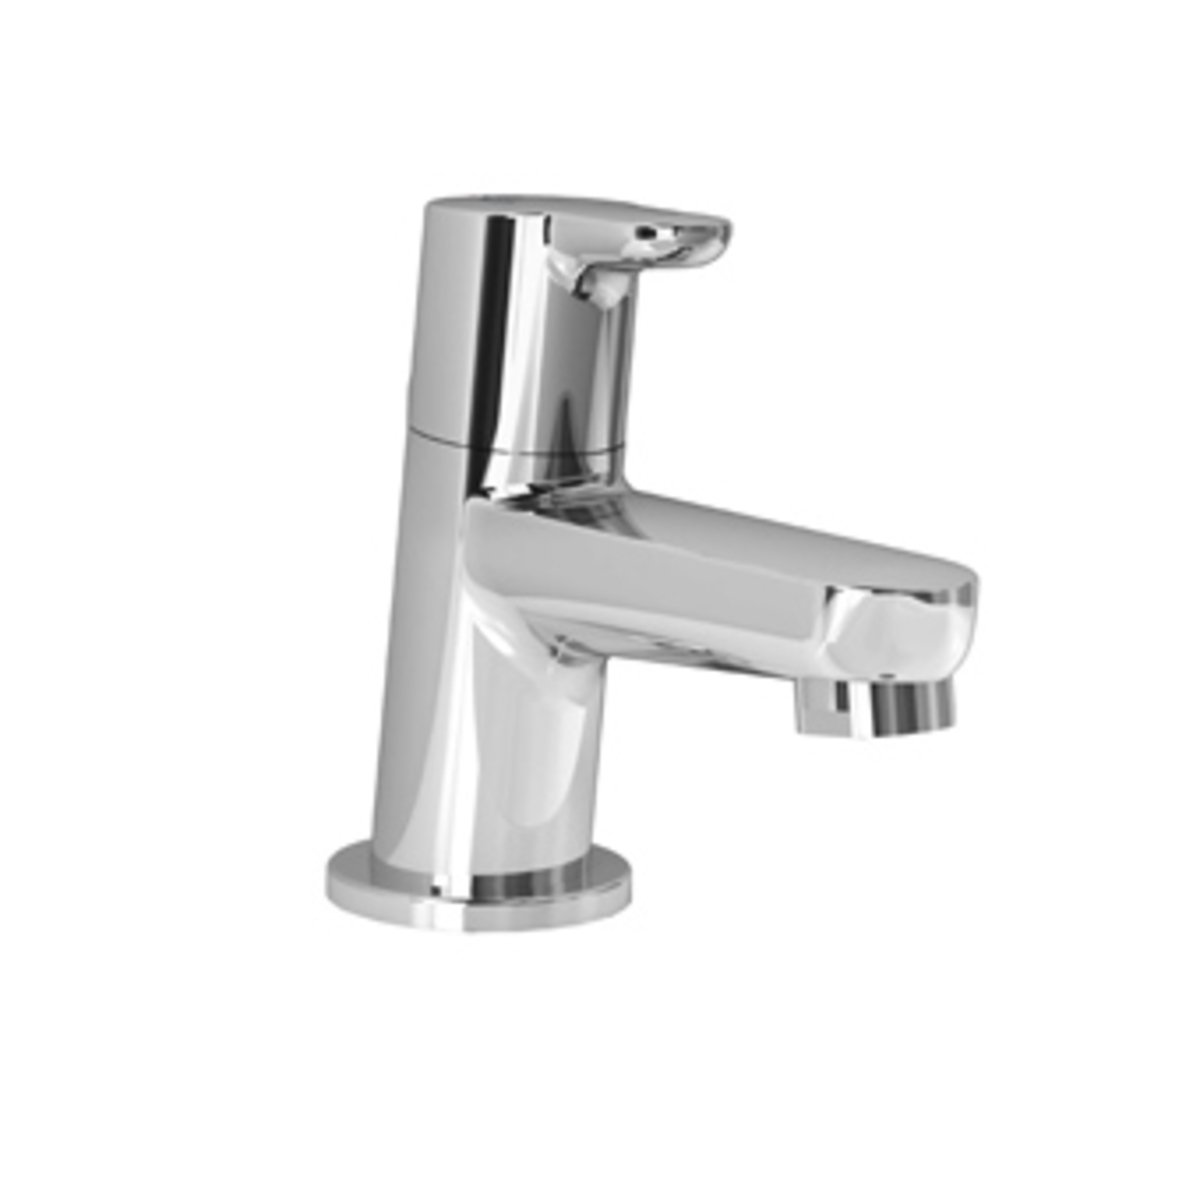 Ideal Standard Connect Blue Robinet Lave Mains Chrome B9927aa